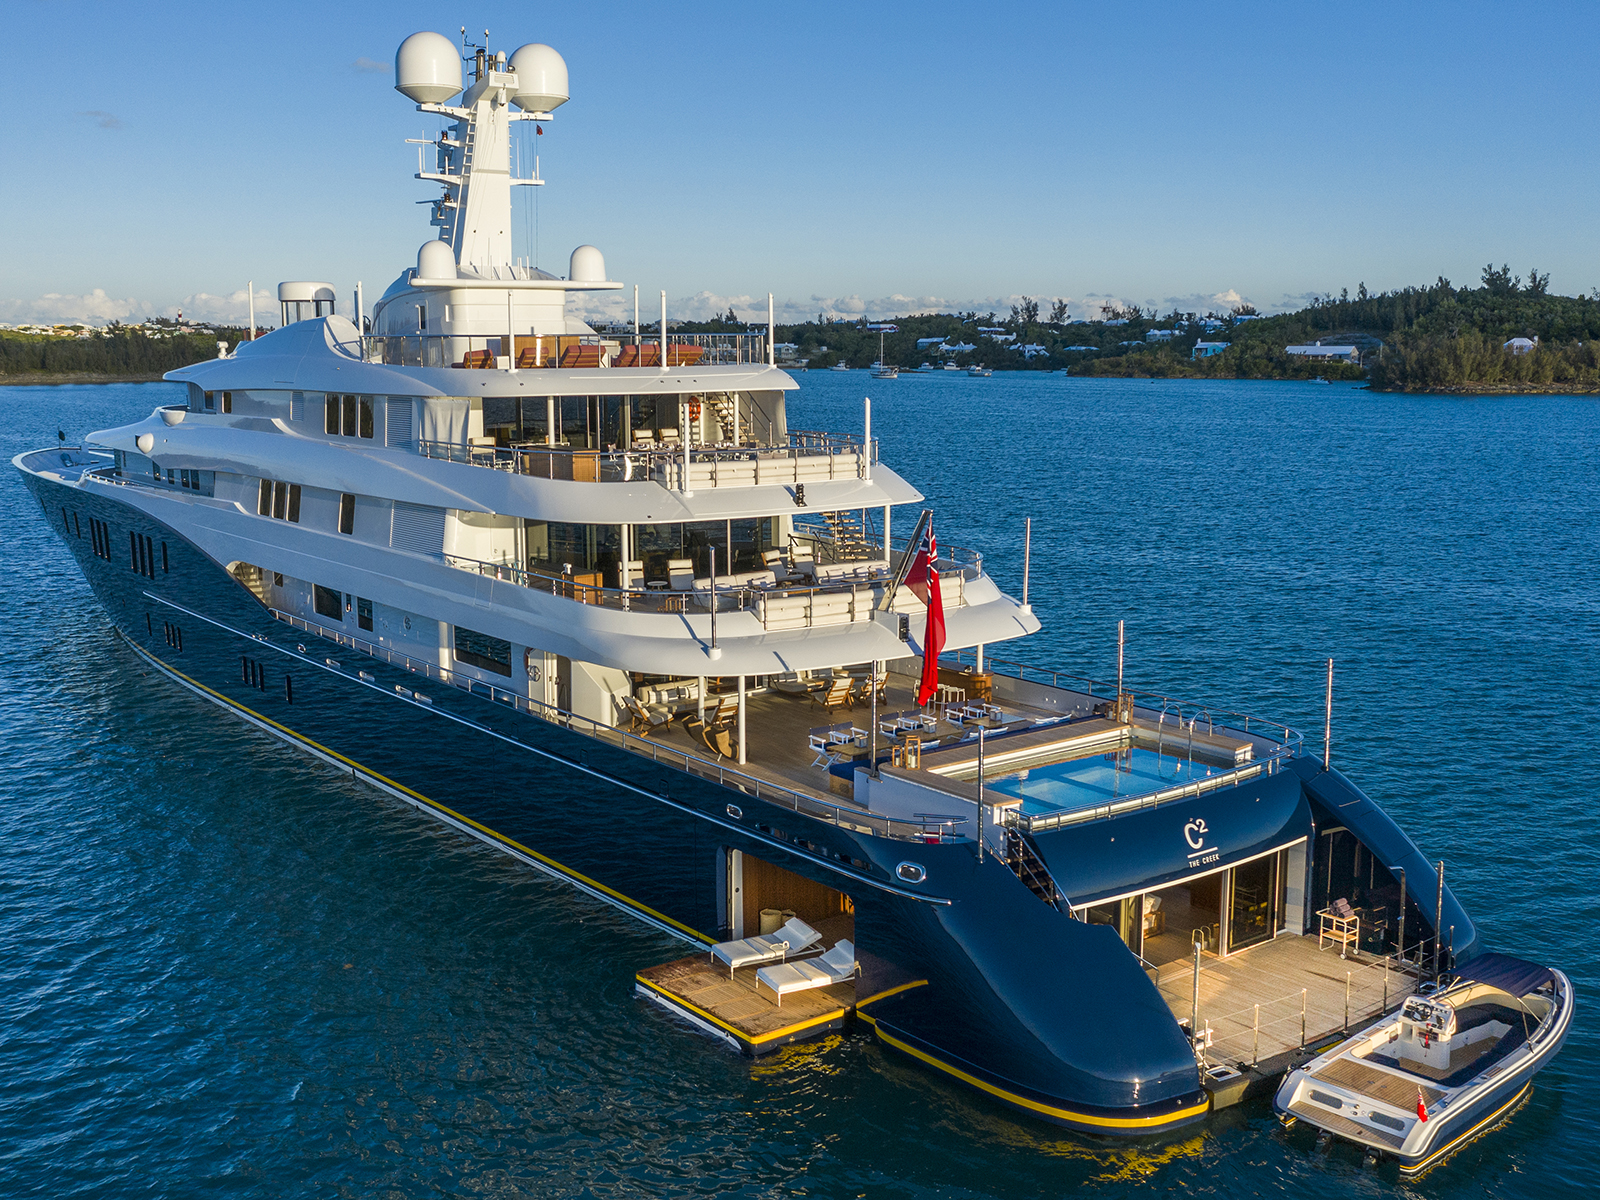 The C2 superyacht from Burgess